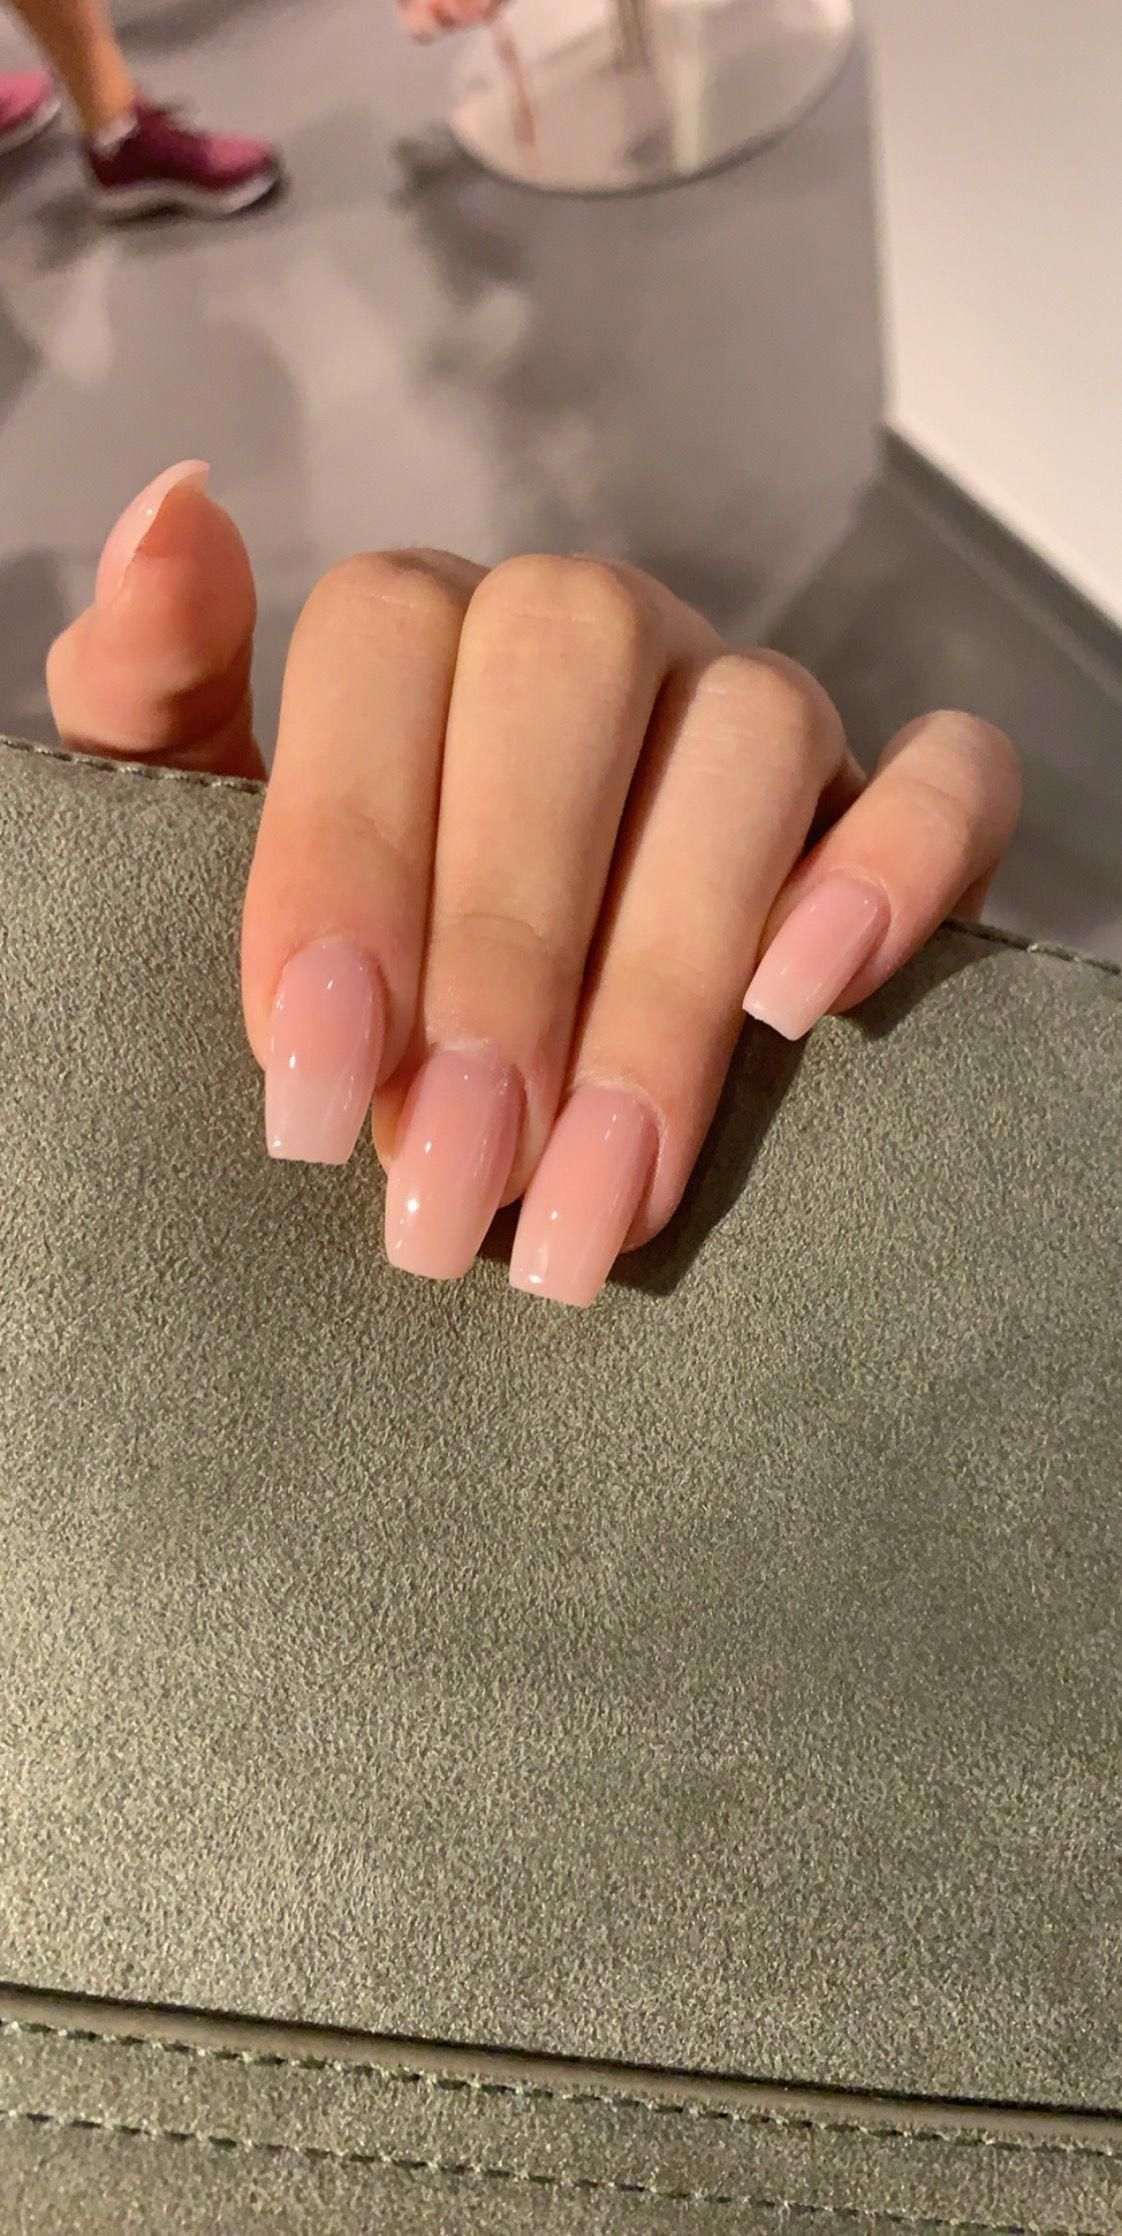 Terrific Nails Please Check Out These Super Clever Pointer Reference Number 7918827945 Right N In 2020 Acrylic Nails Coffin Short Gold Gel Nails Simple Acrylic Nails